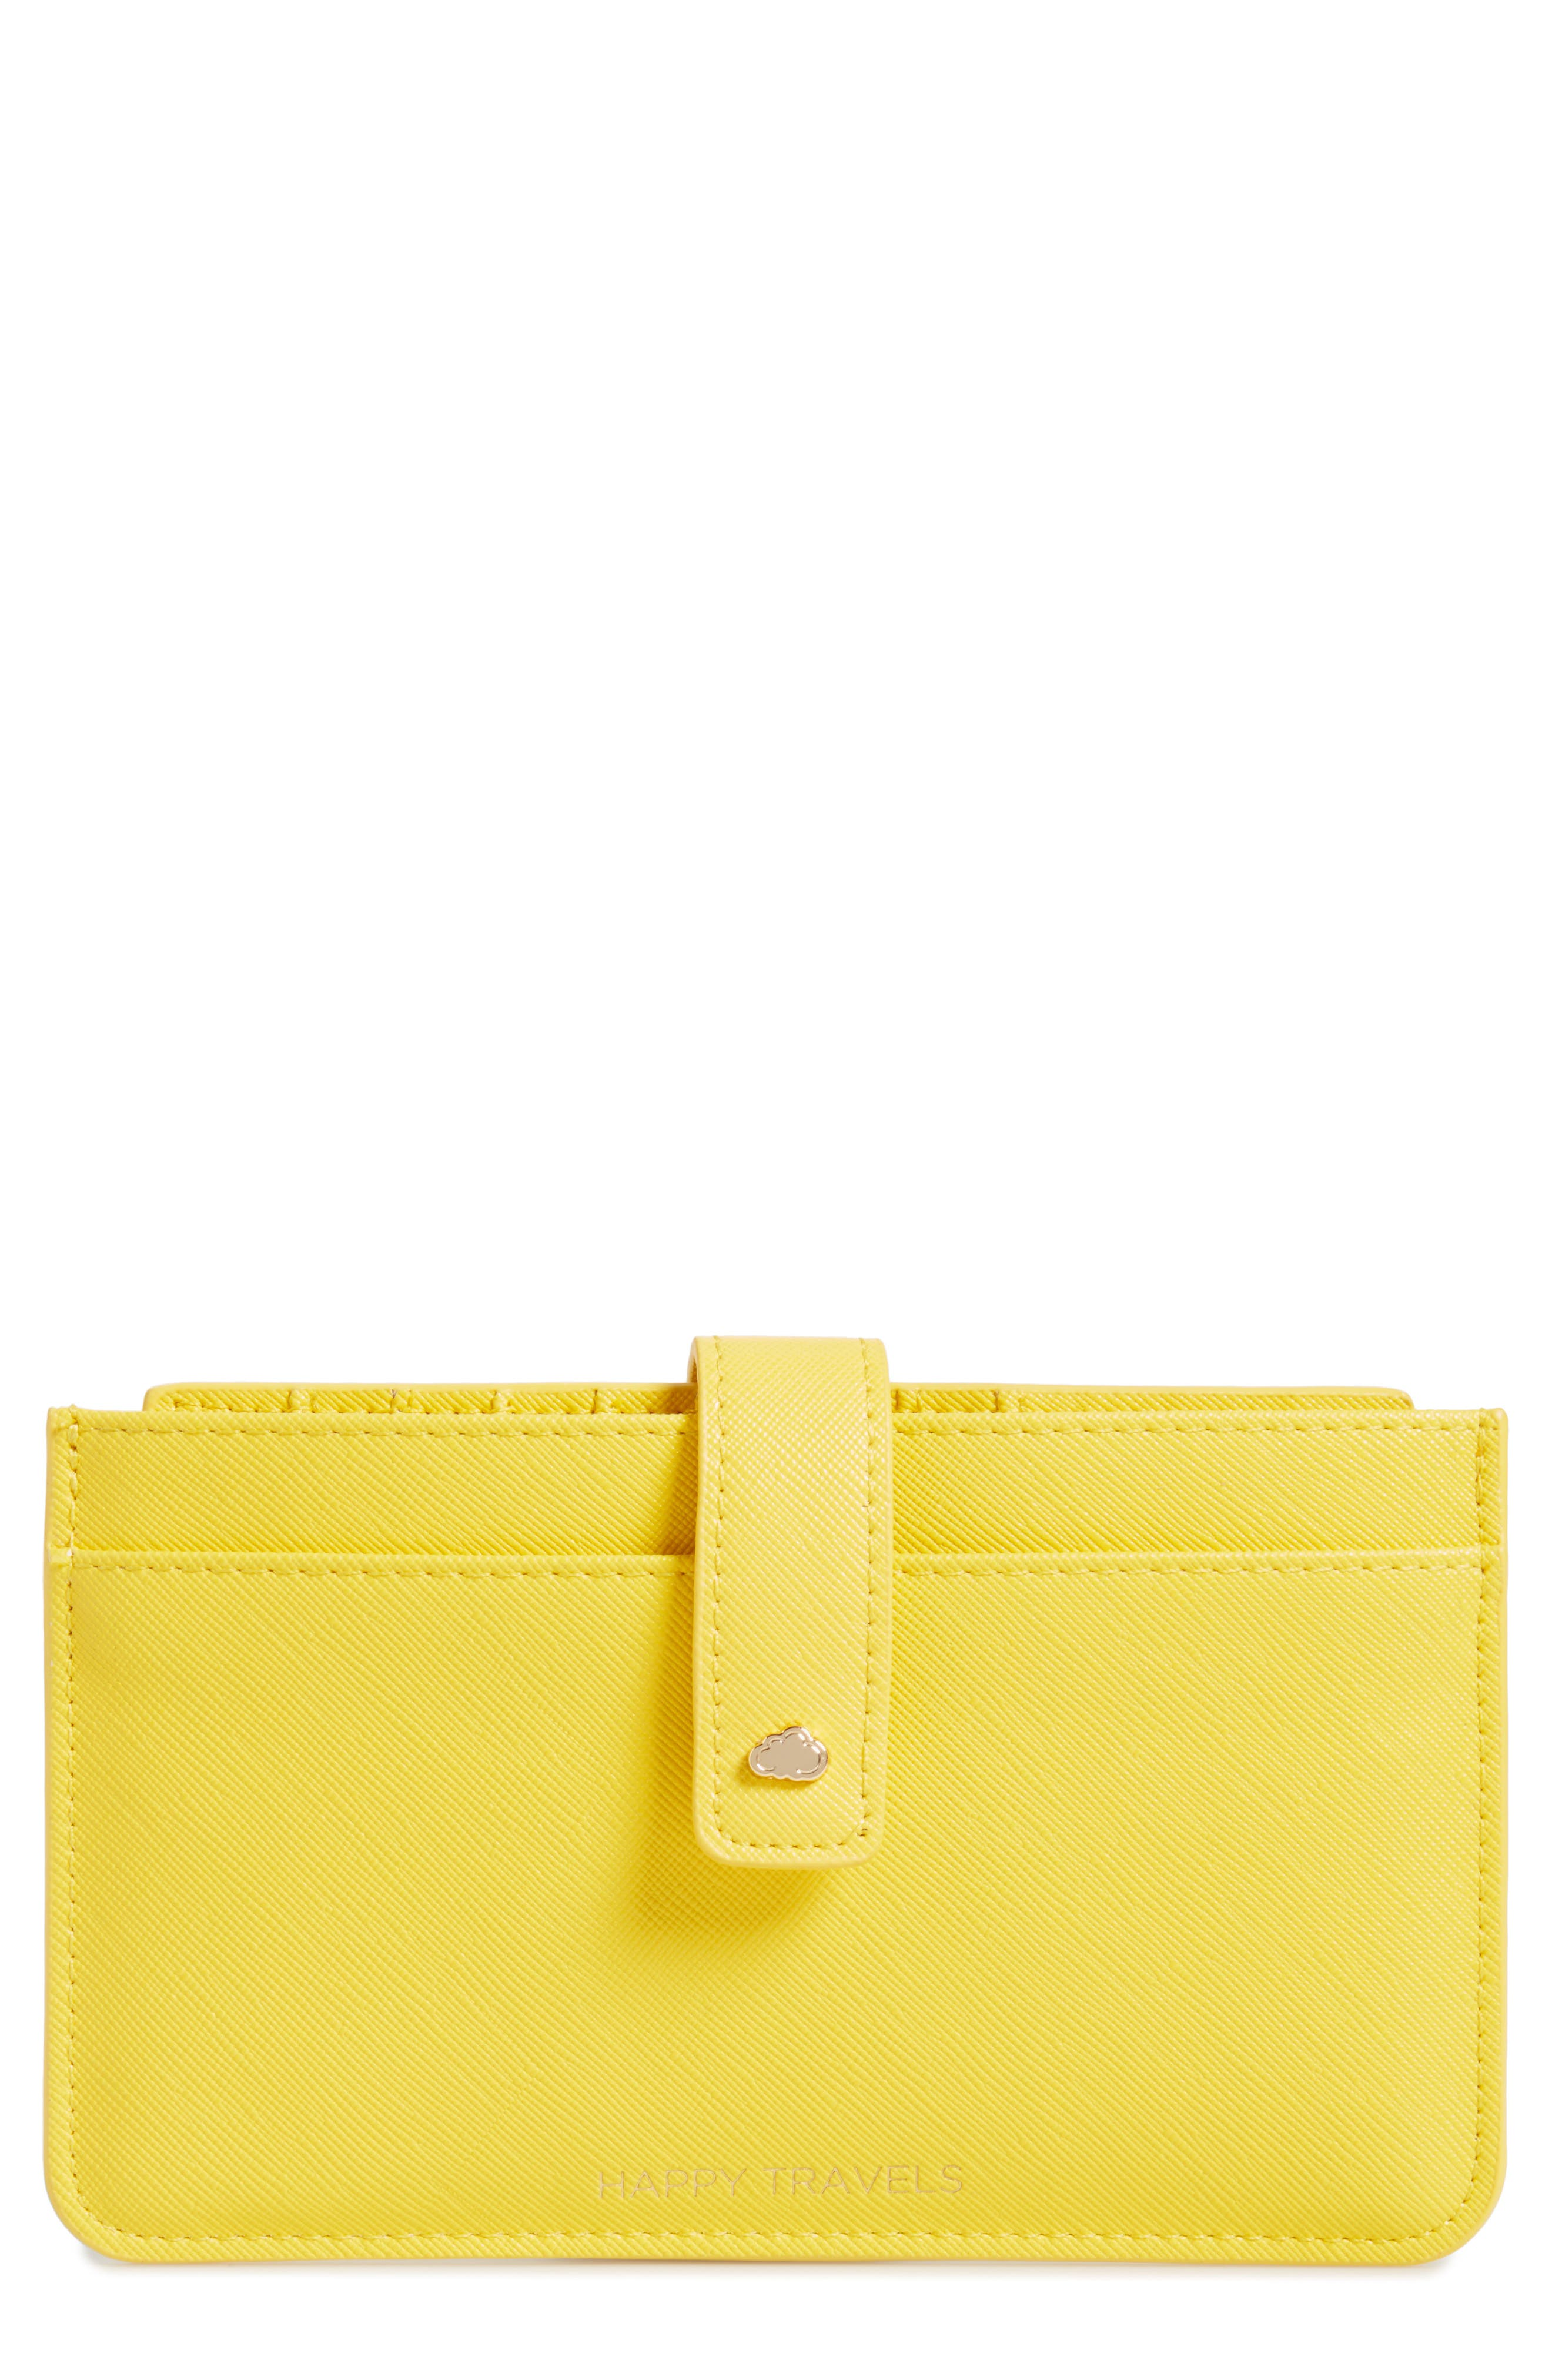 Alternate Image 1 Selected - Estella Bartlett Happy Travels Faux Leather Document Wallet